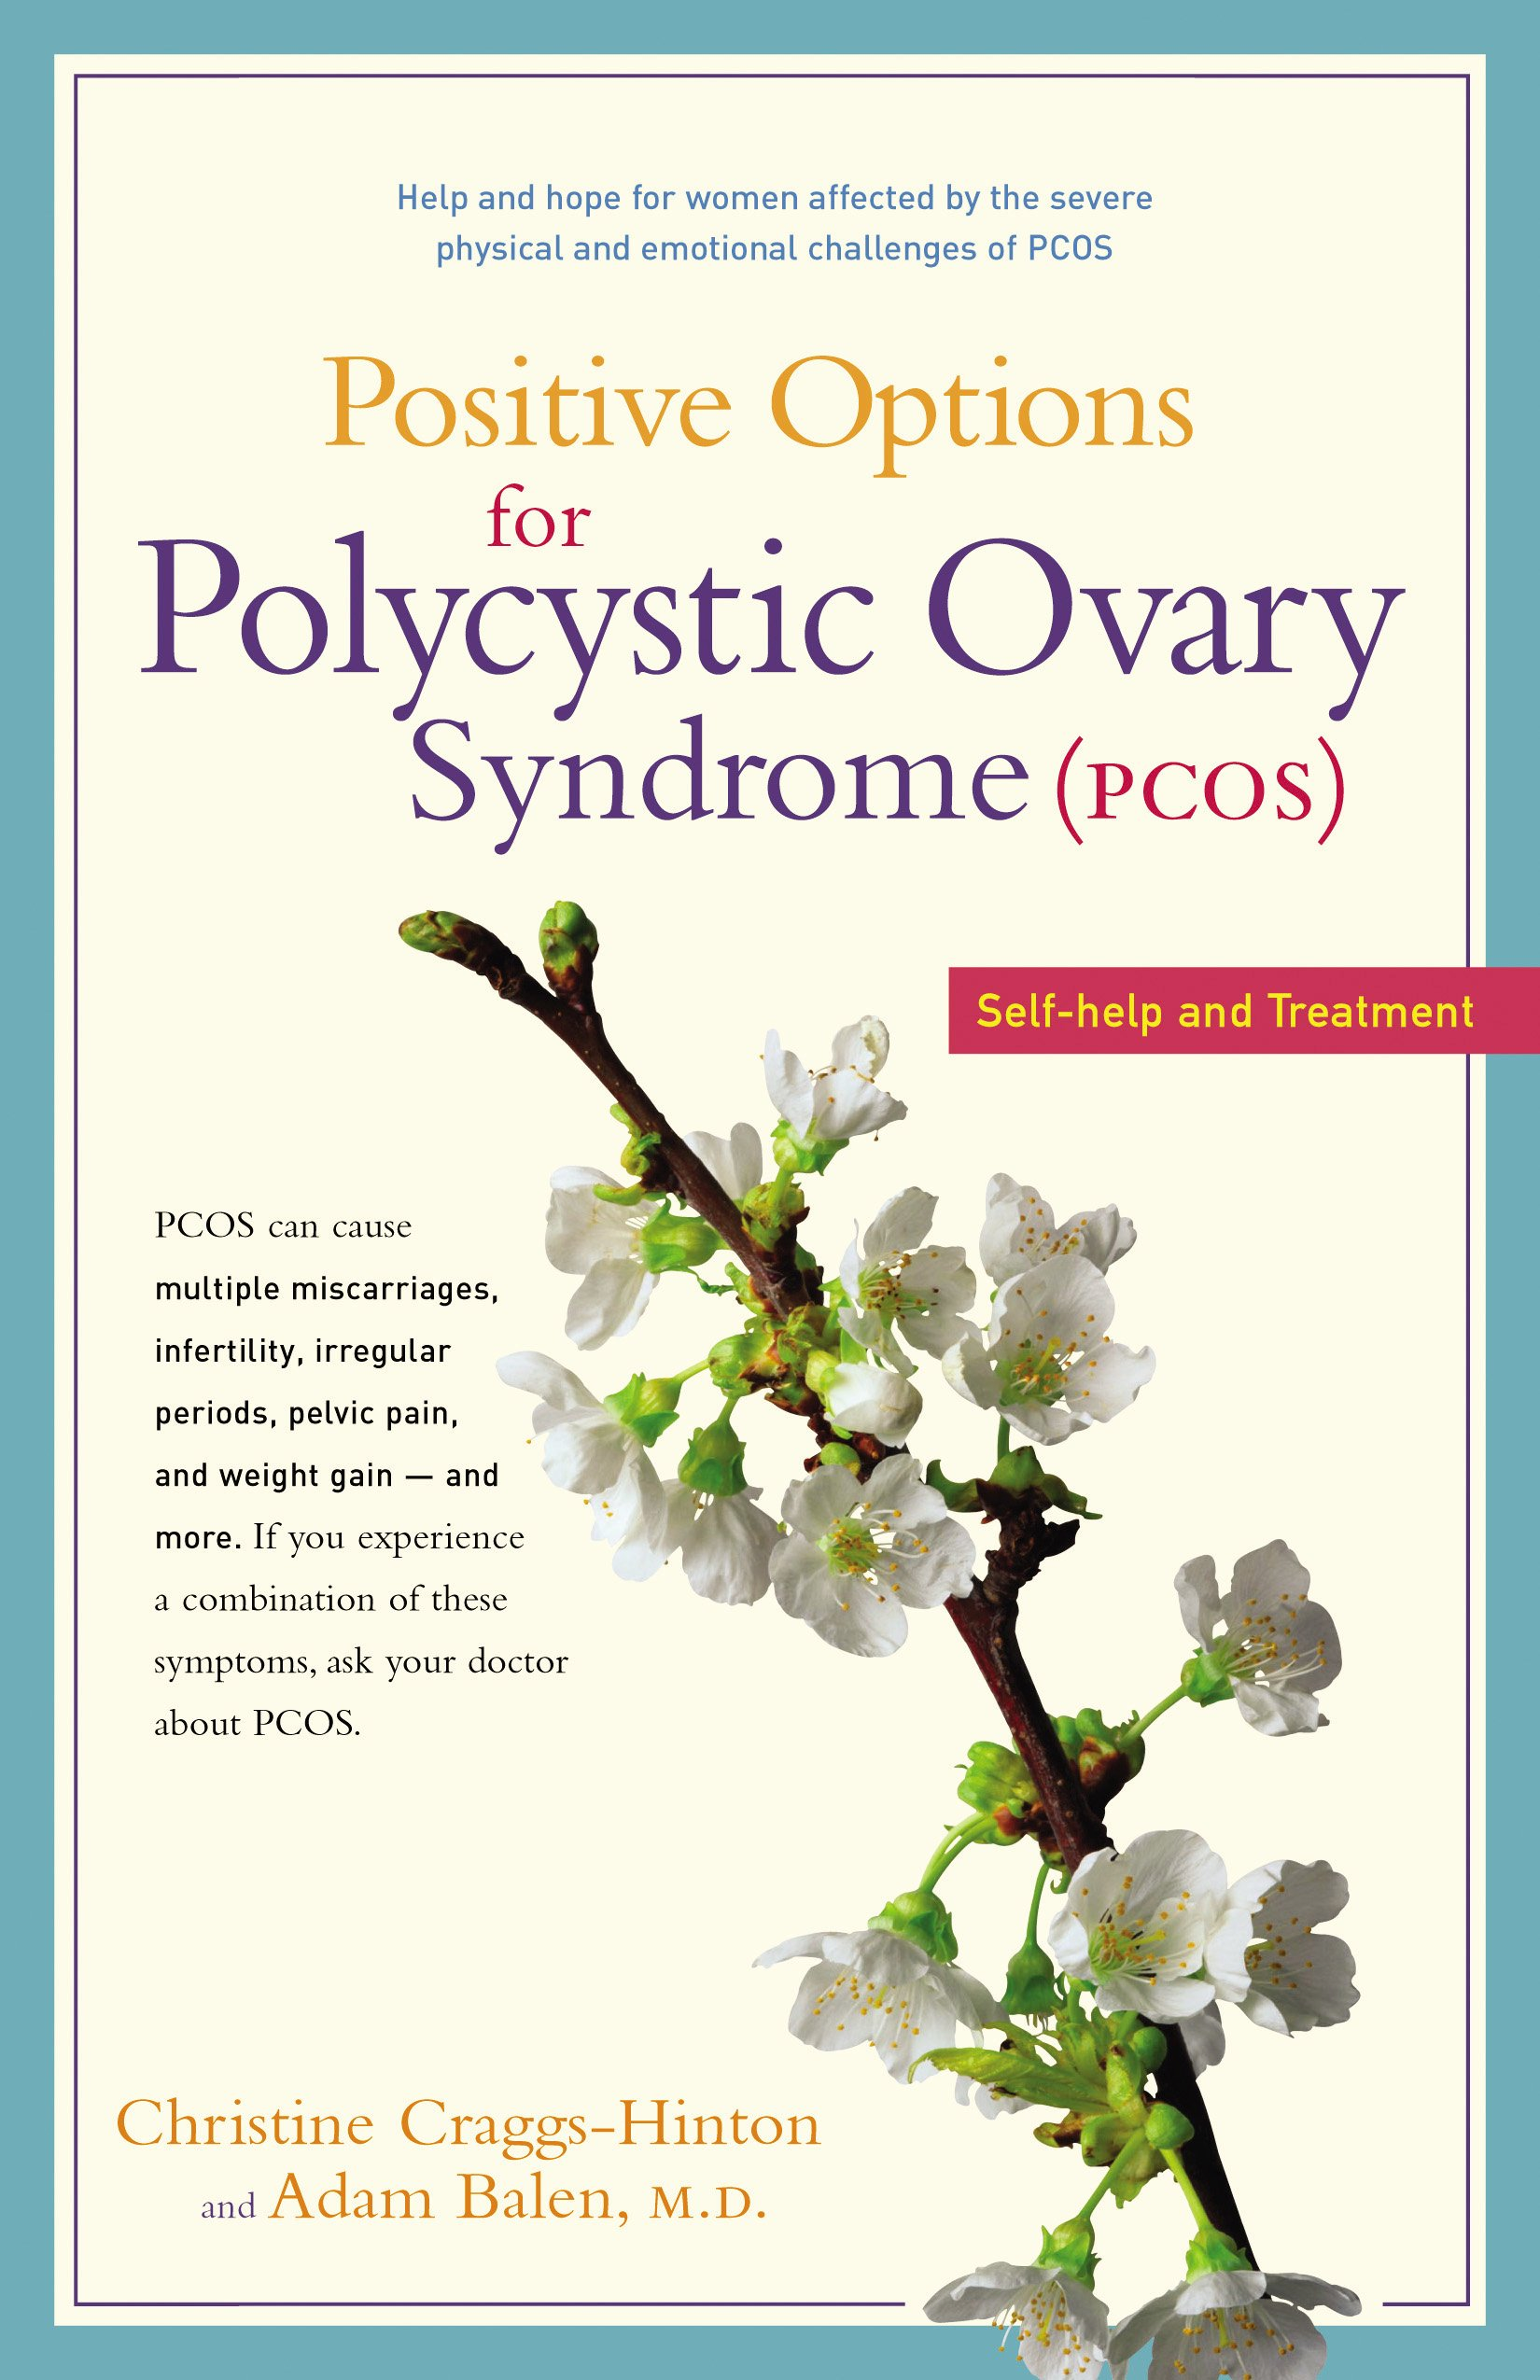 Download Positive Options for Polycystic Ovary Syndrome (PCOS): Self-Help and Treatment (Positive Options for Health) pdf